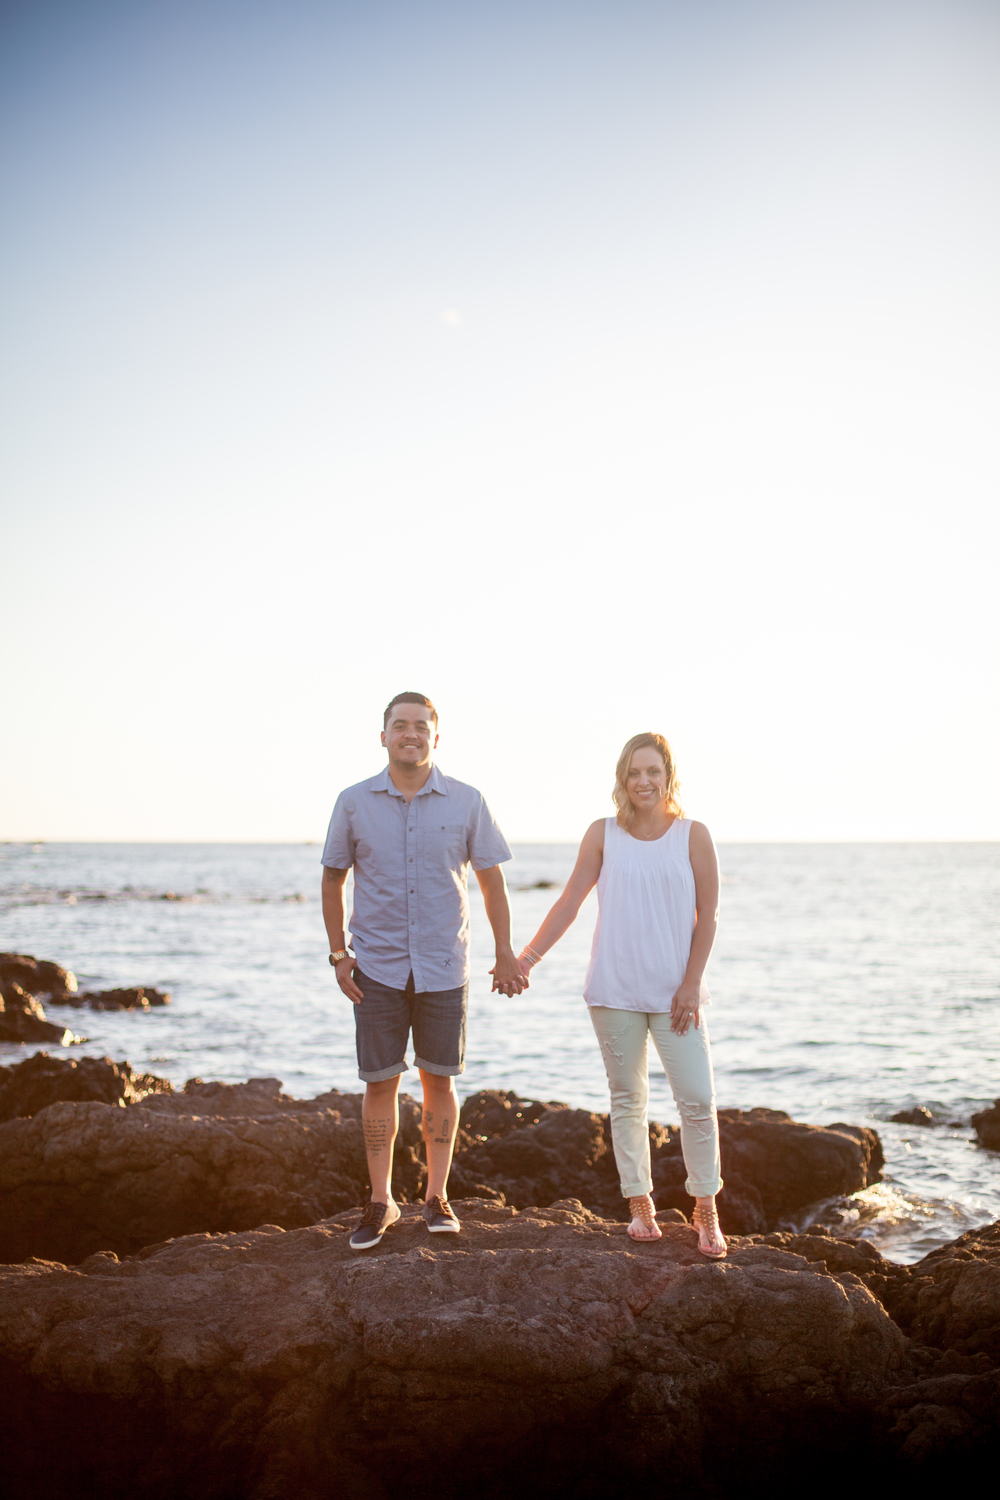 big island hawaii engagement photography 20150529183329-1.jpg